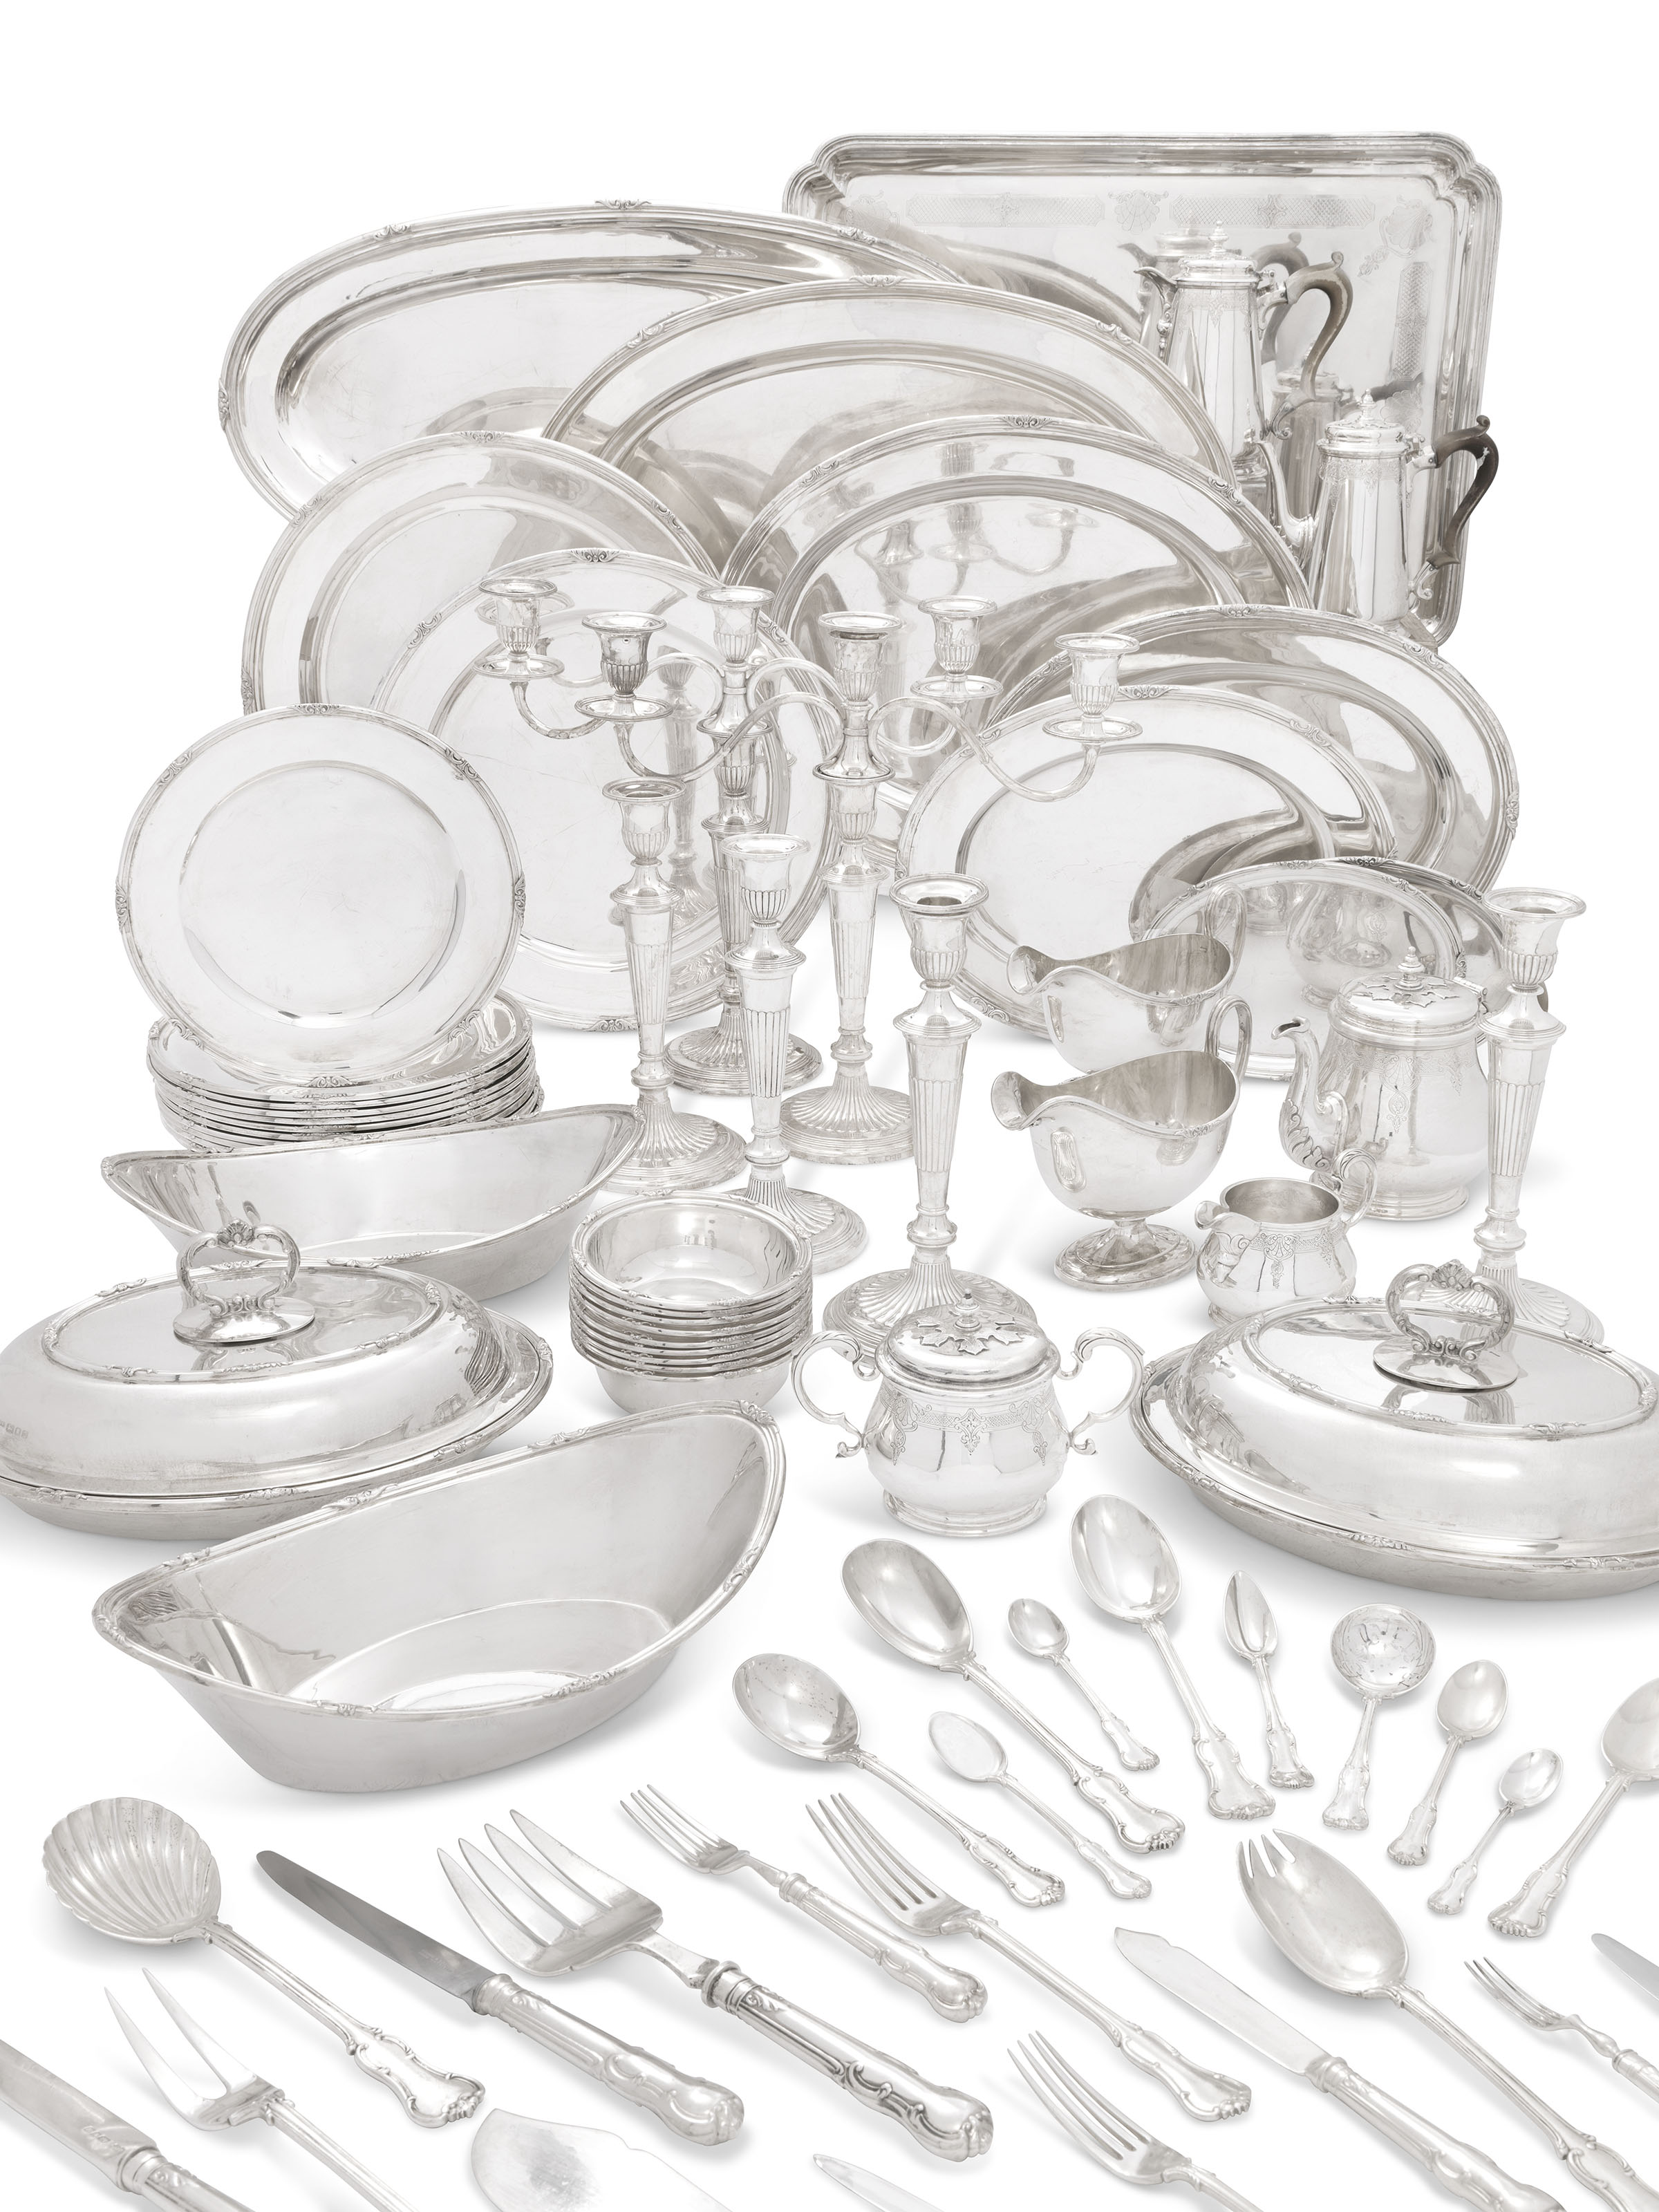 AN ELIZABETH II SILVER DINNER-SERVICE, TEA AND COFFEE-SERVICE AND TABLE-SERVICE